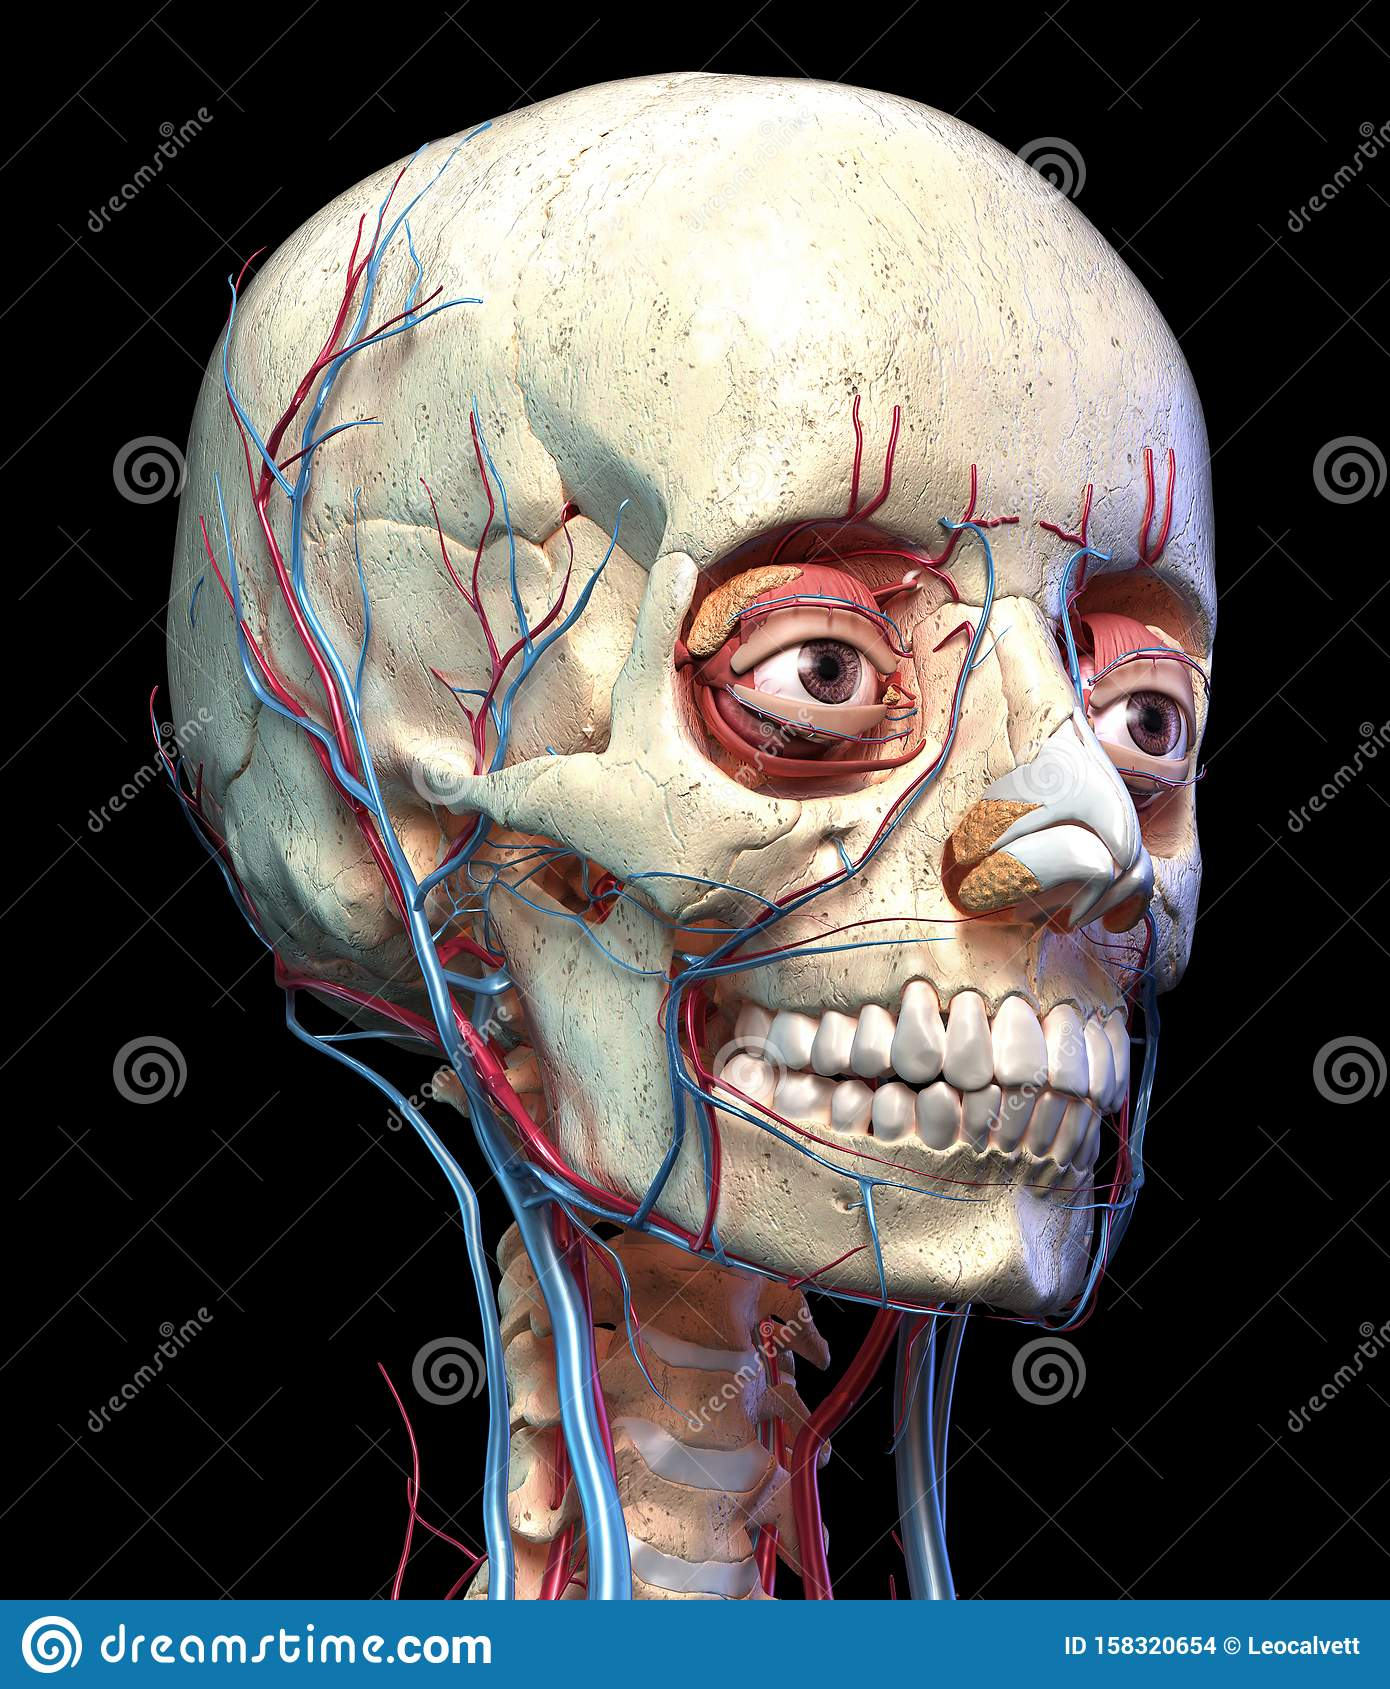 Human Skull With Eyes, Veins And Arteries. Perspective